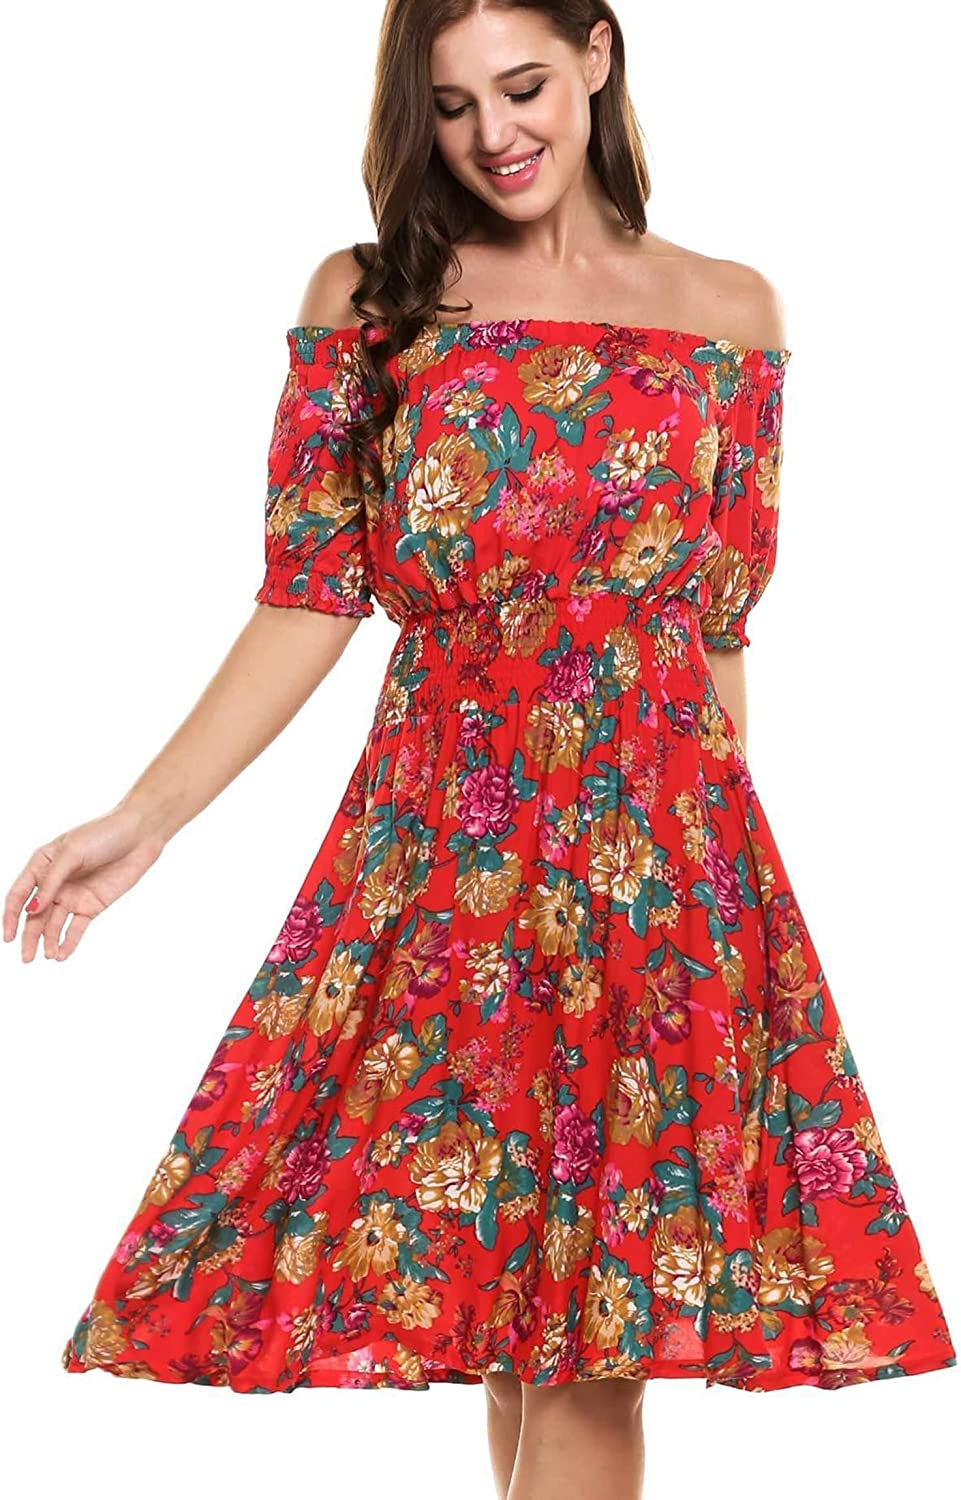 Pagacat Women's Off the Shoulder Midi Short Party Flowers Elastic Waist Dress MXXL